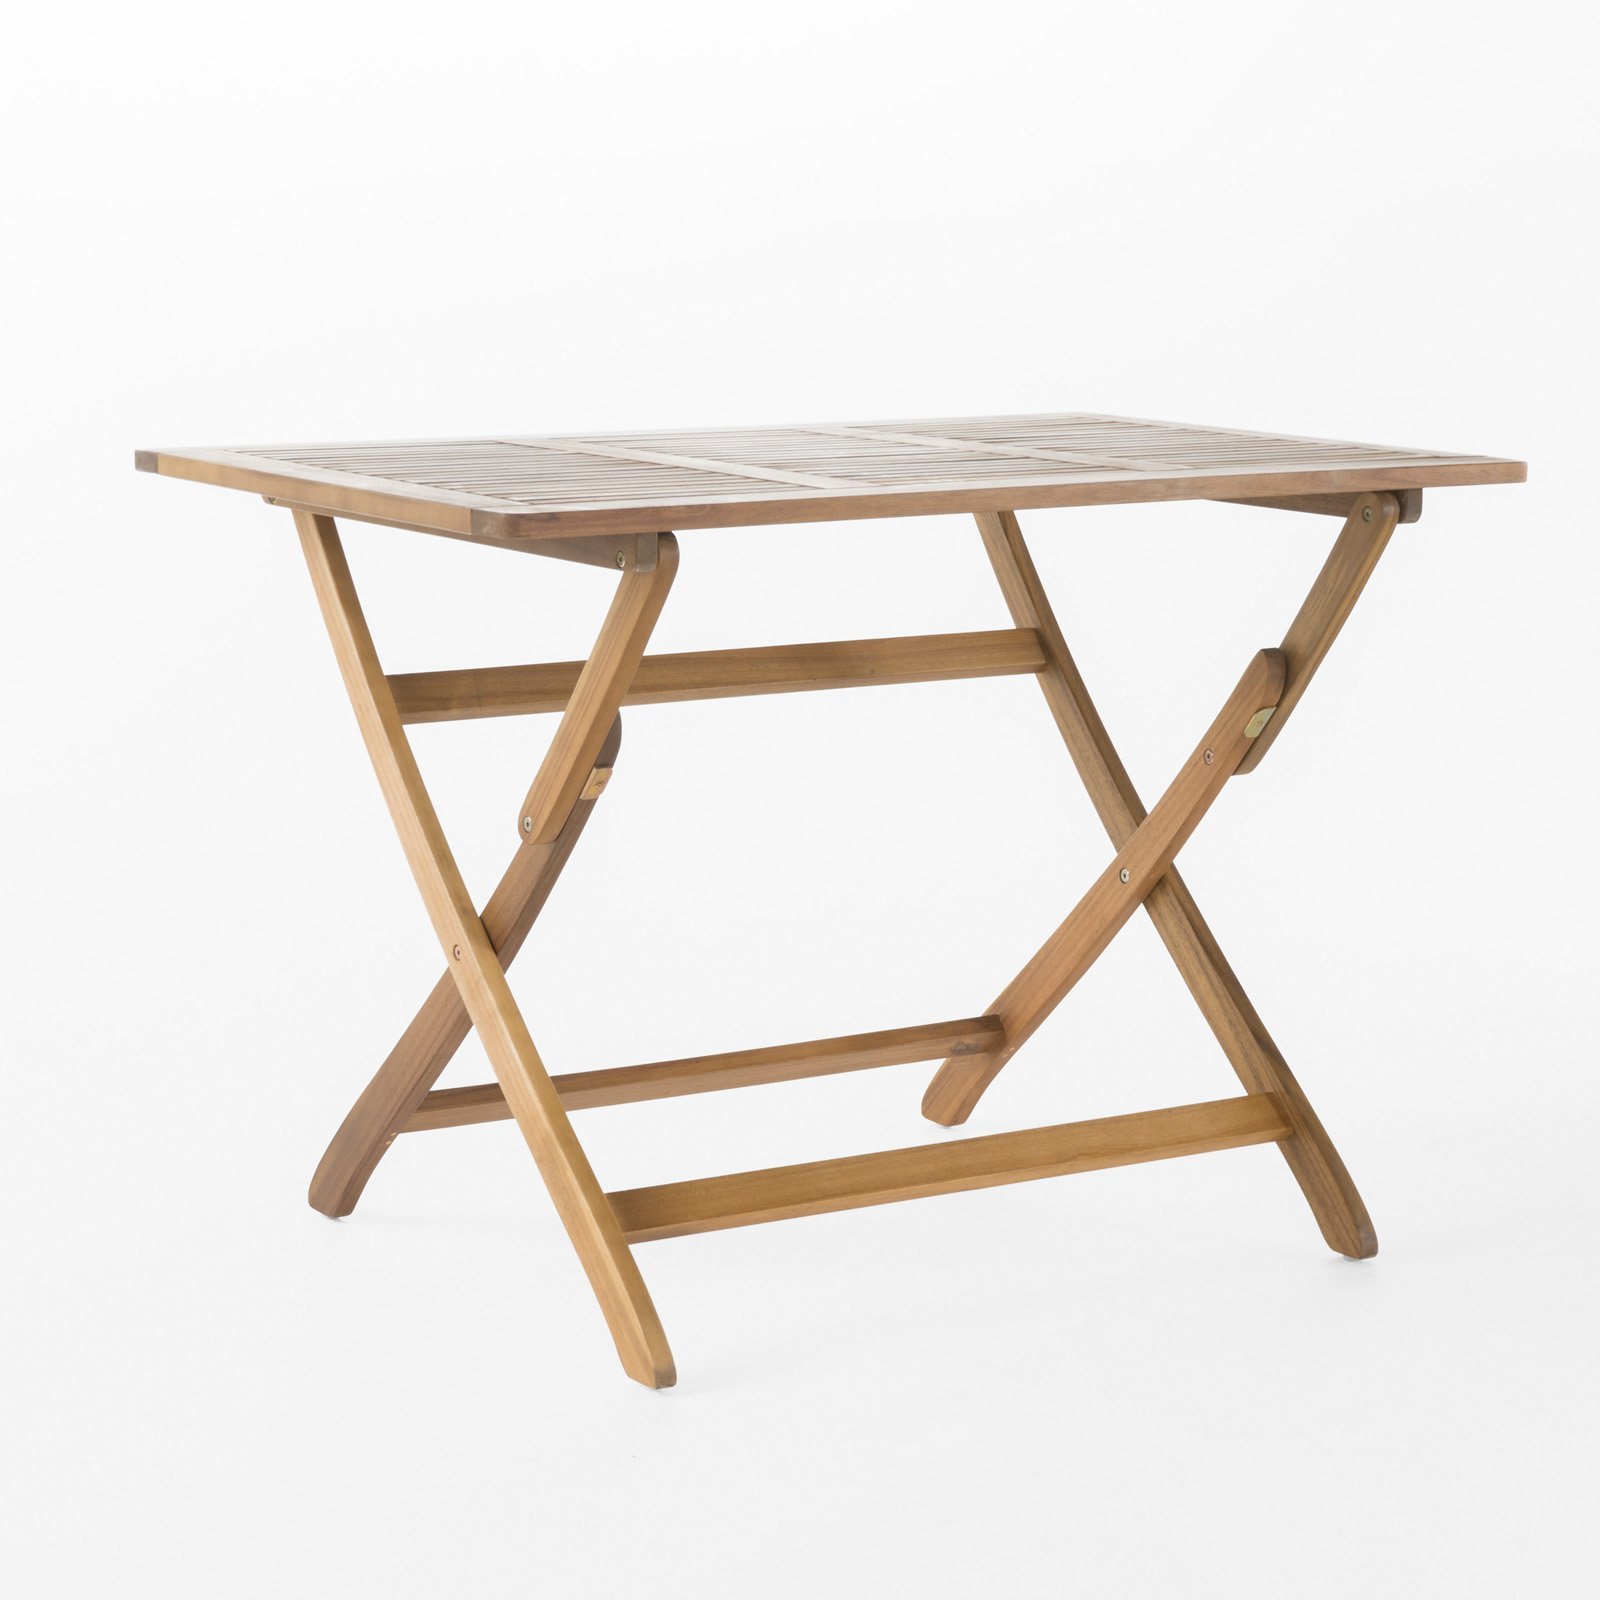 Pablo Outdoor Acacia Wood Dining Table